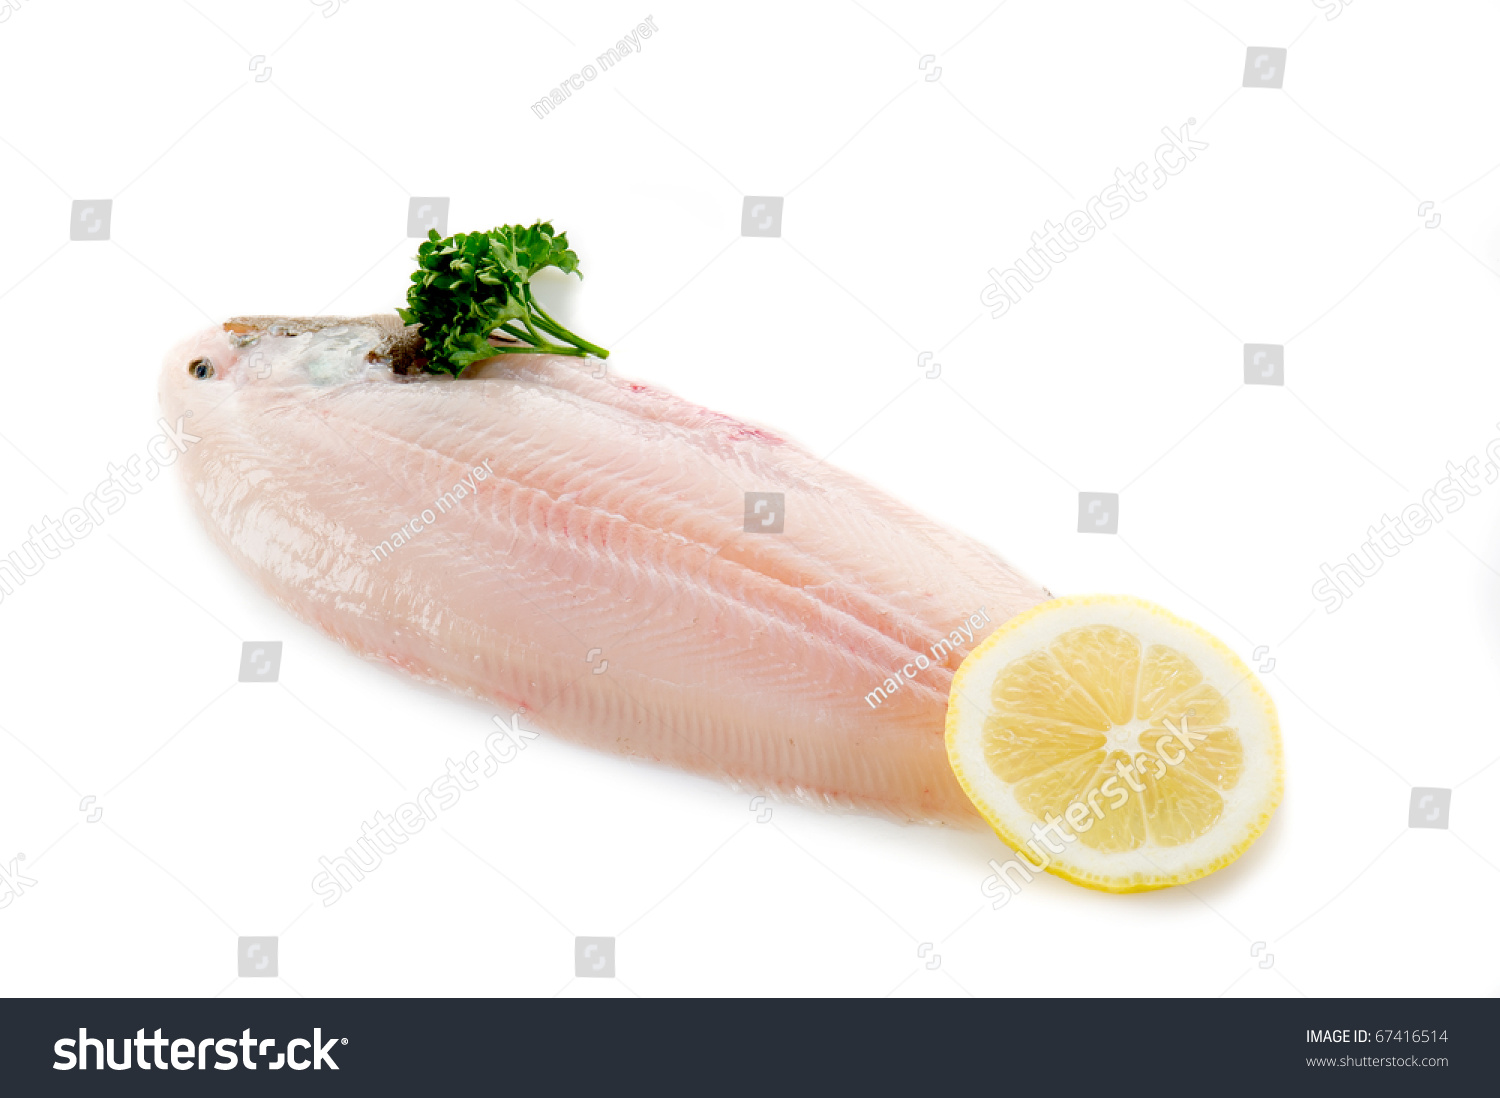 Sole fish ready to cook stock photo 67416514 shutterstock for How to cook sole fish